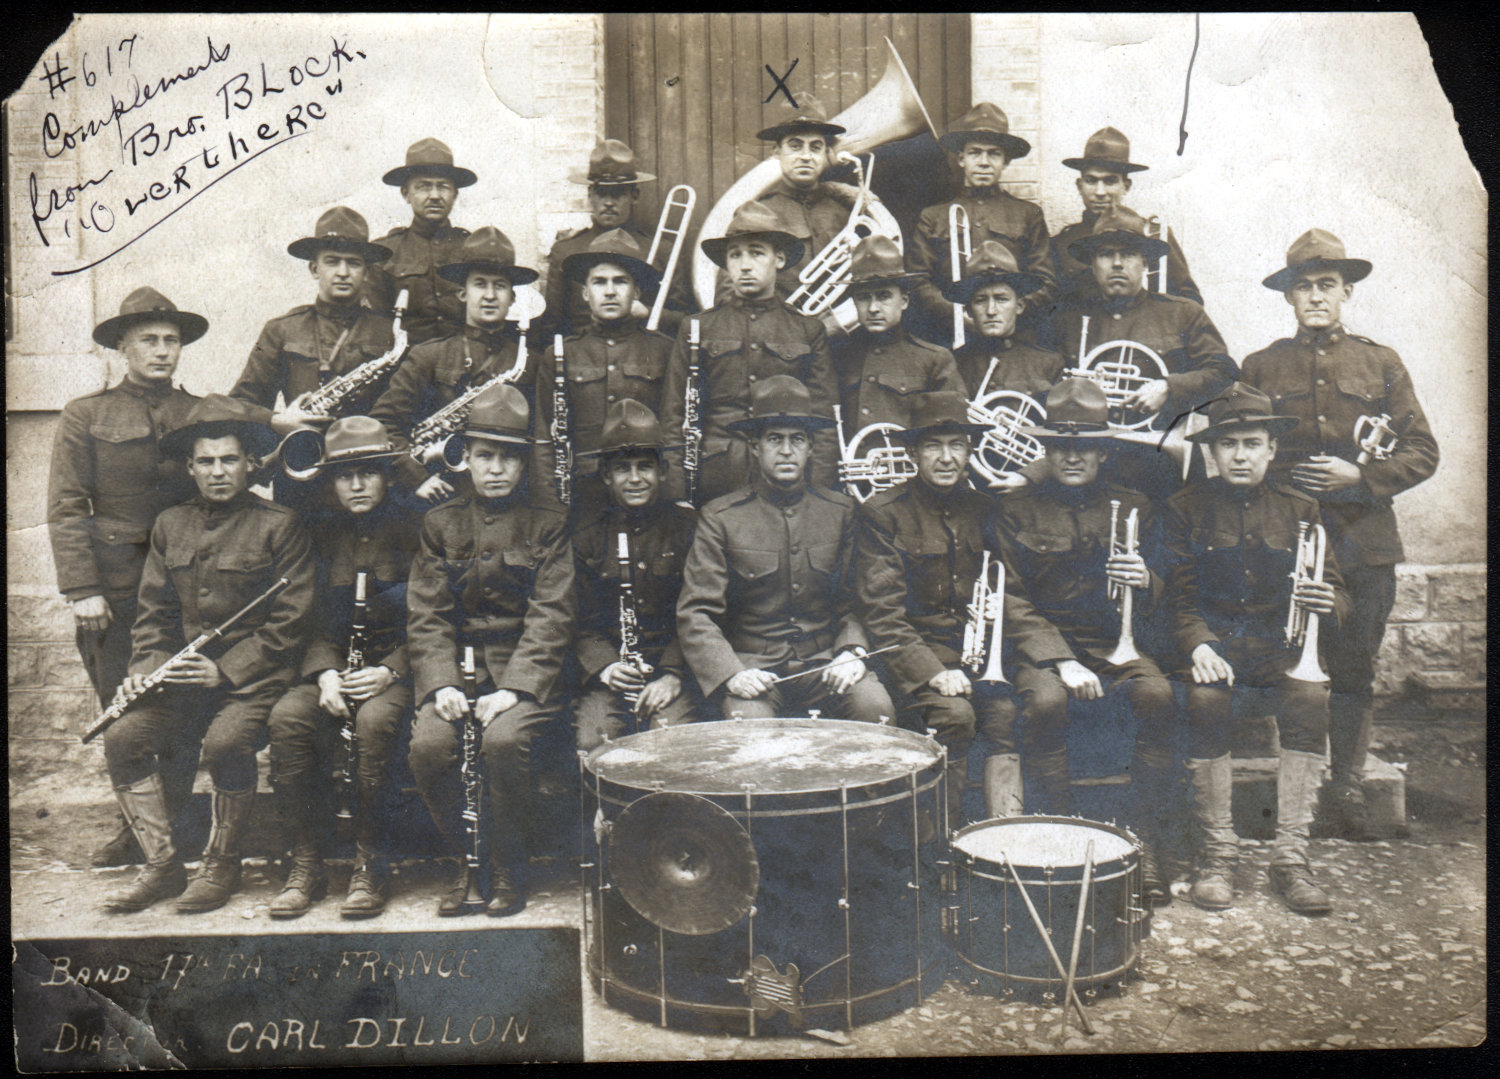 photo of 17th field artillery band